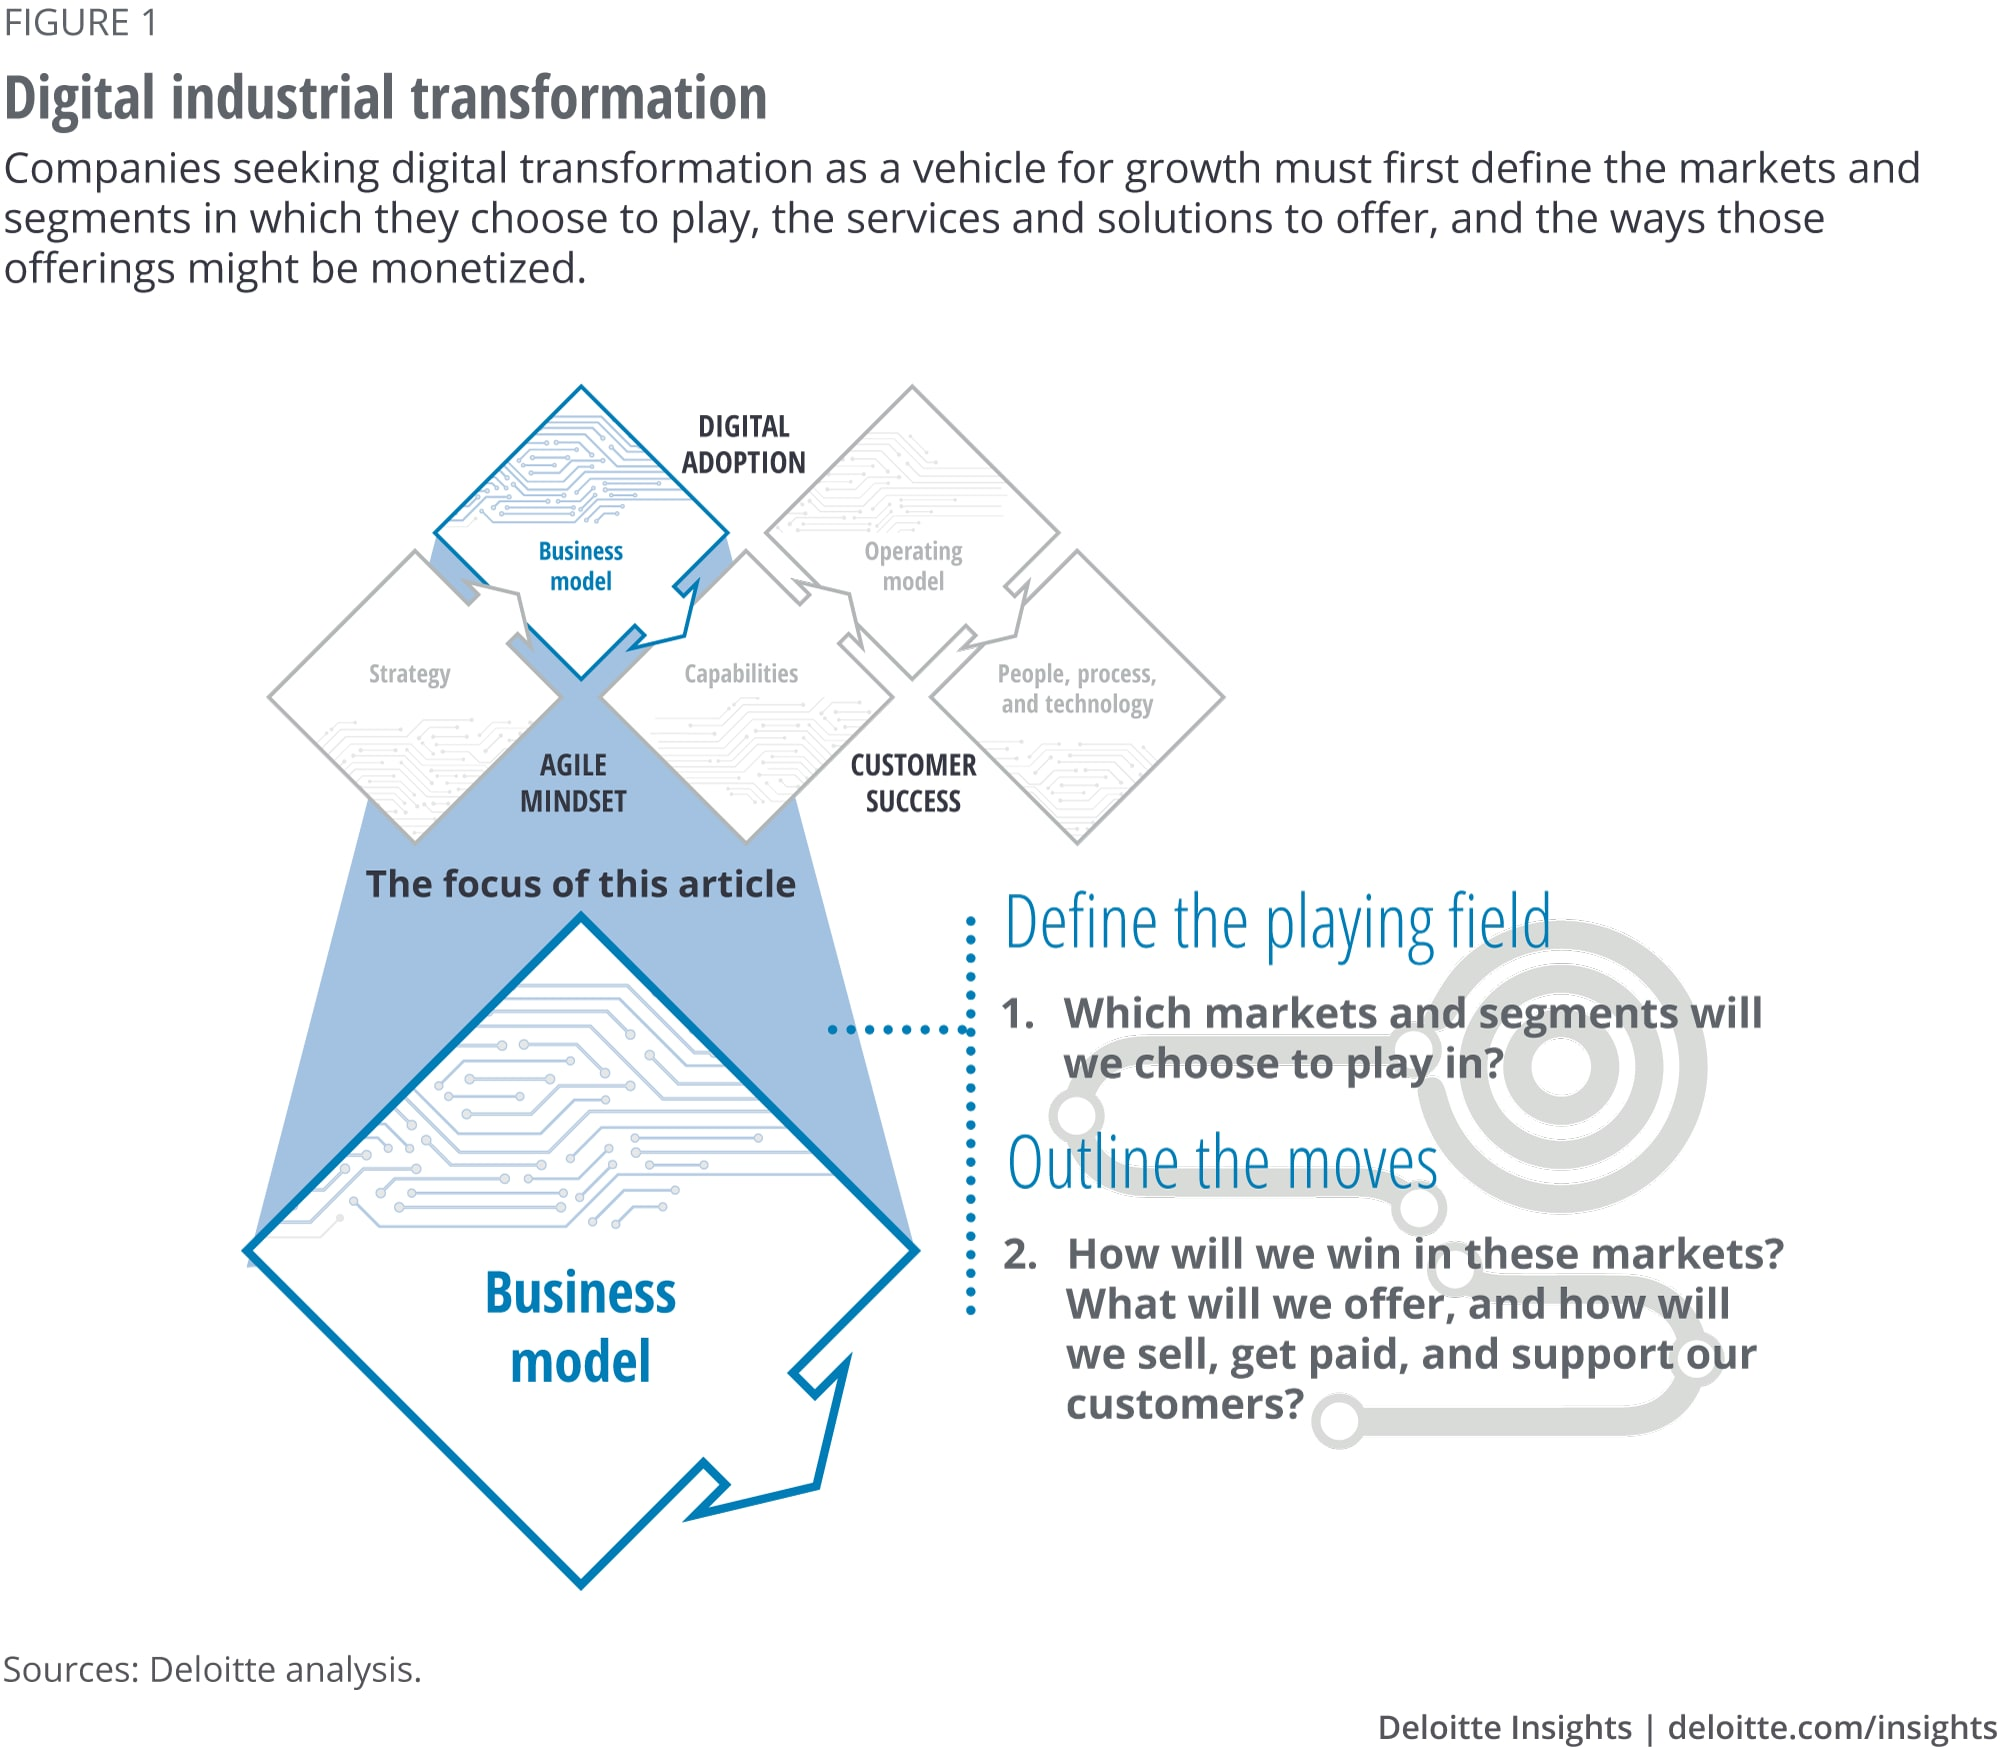 Digital industrial transformation